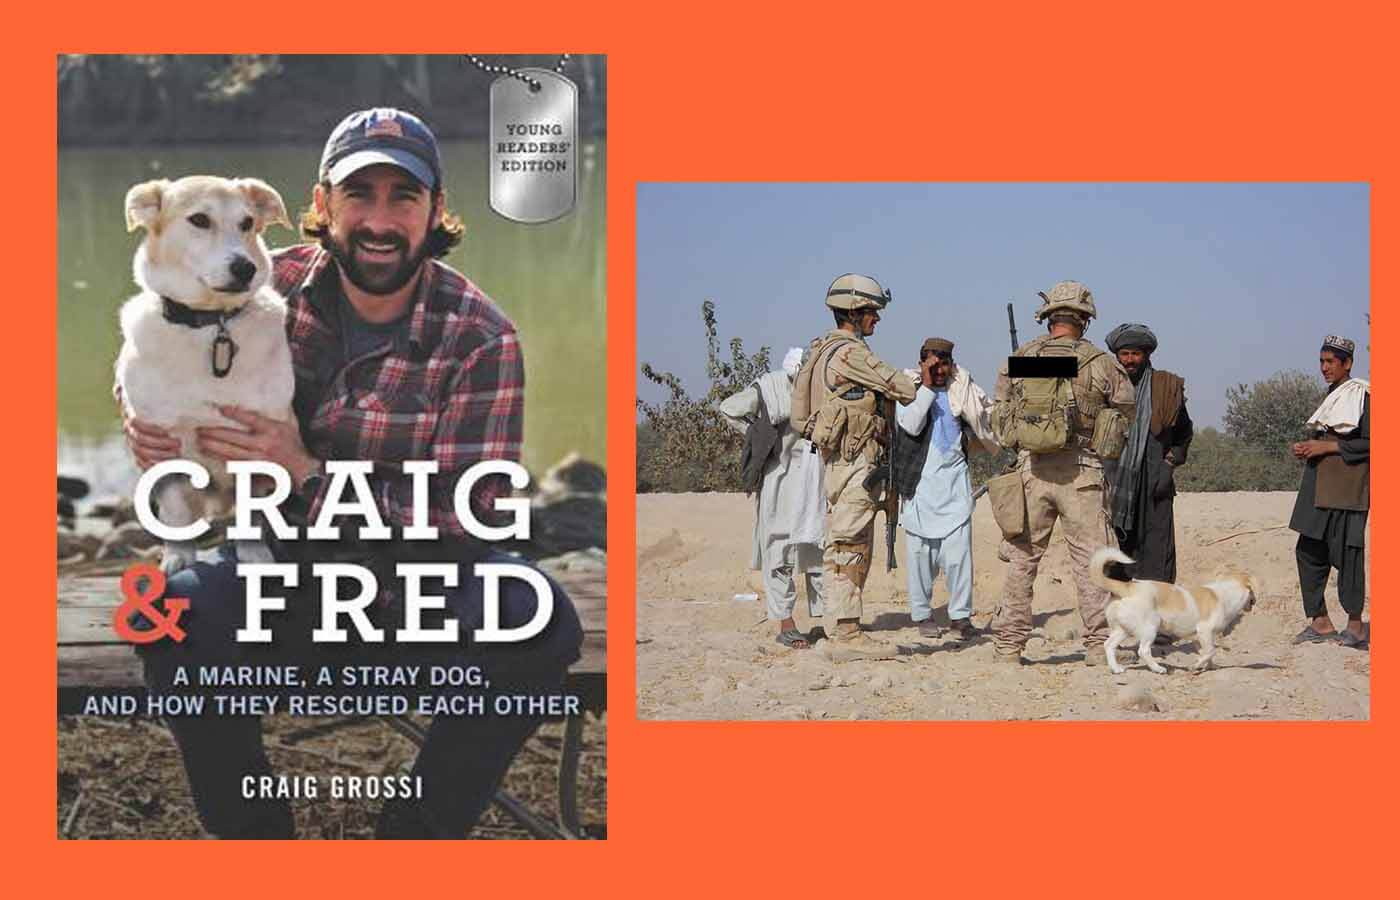 Author Craig Grossi and Fred